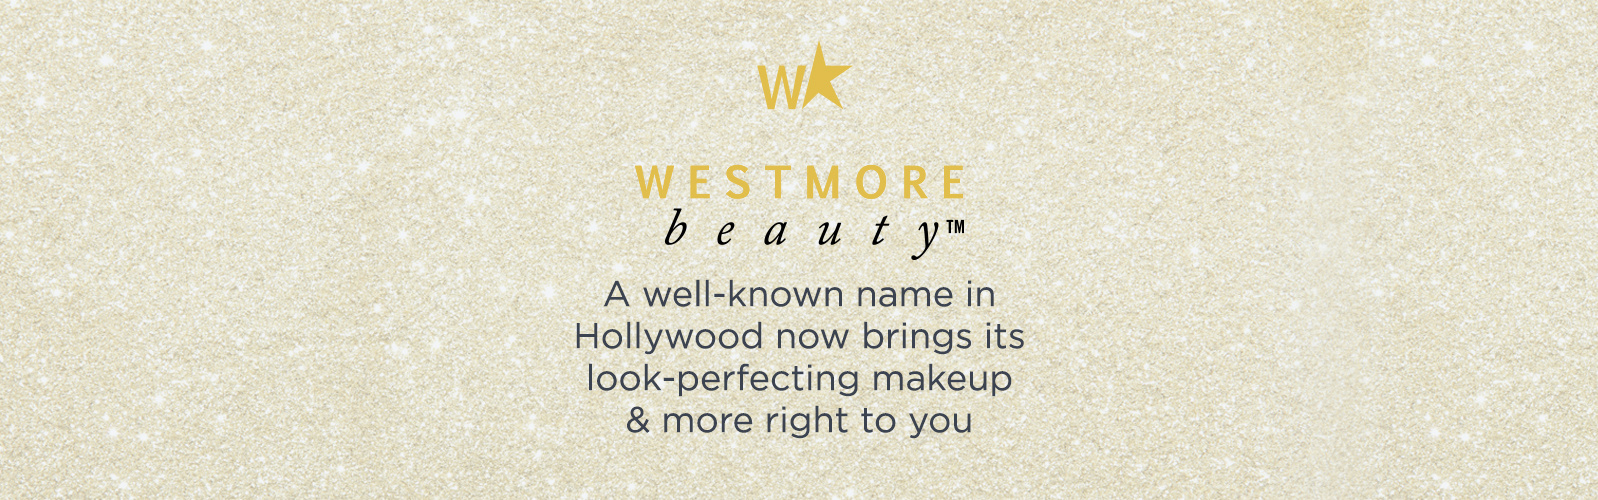 Westmore Beauty.  A well-known name in Hollywood now brings its look-perfecting makeup & more right to you